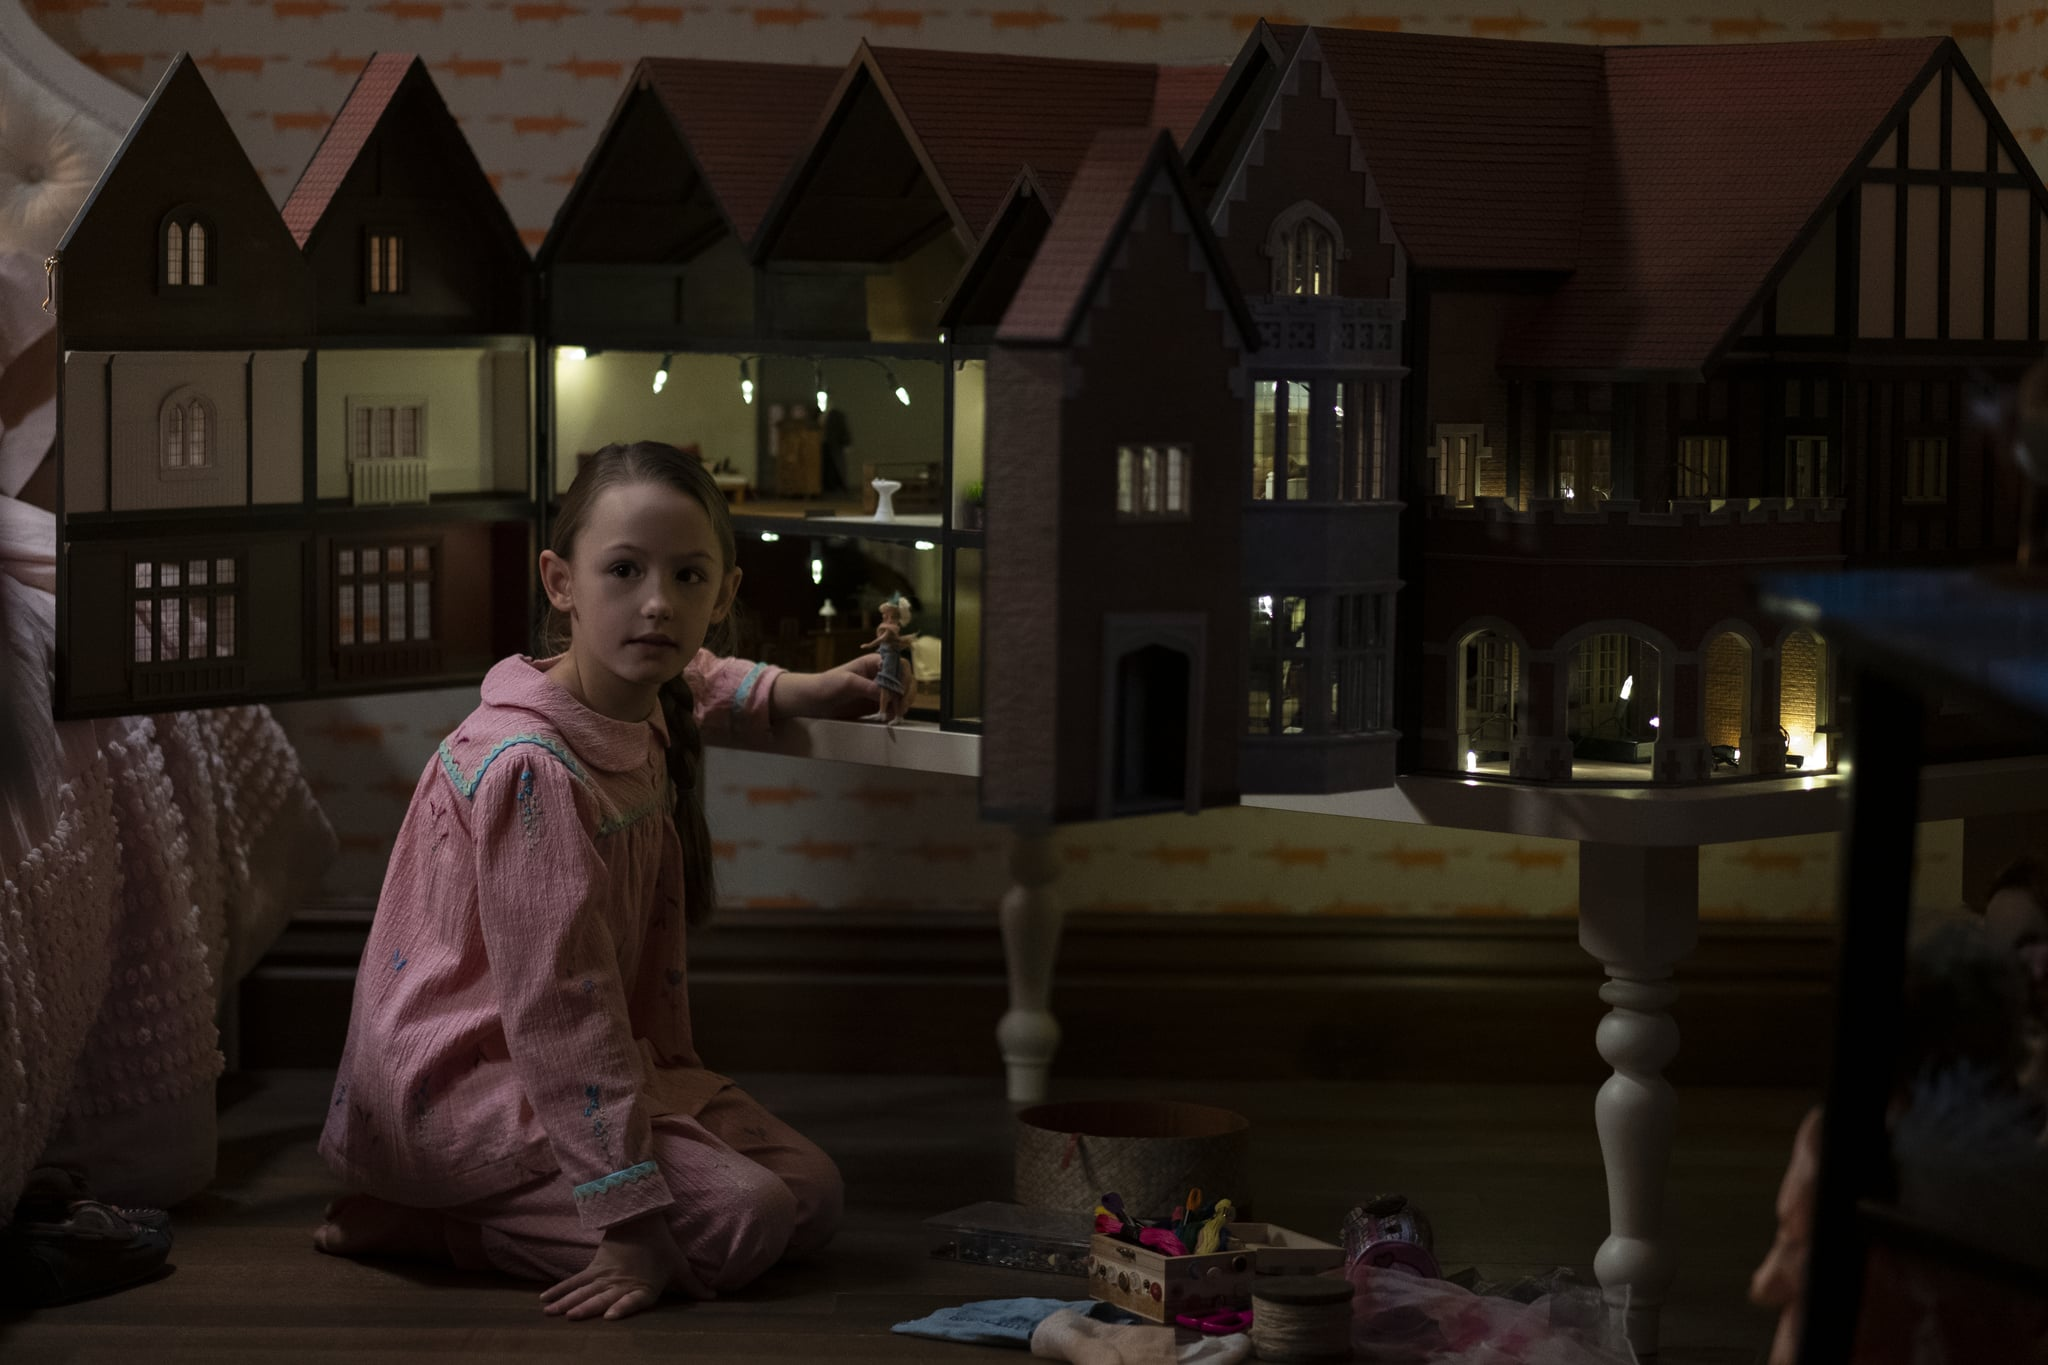 THE HAUNTING OF BLY MANOR (L to R) AMELIE SMITH as FLORA in episode 101 of THE HAUNTING OF BLY MANOR Cr. EIKE SCHROTER/NETFLIX  2020